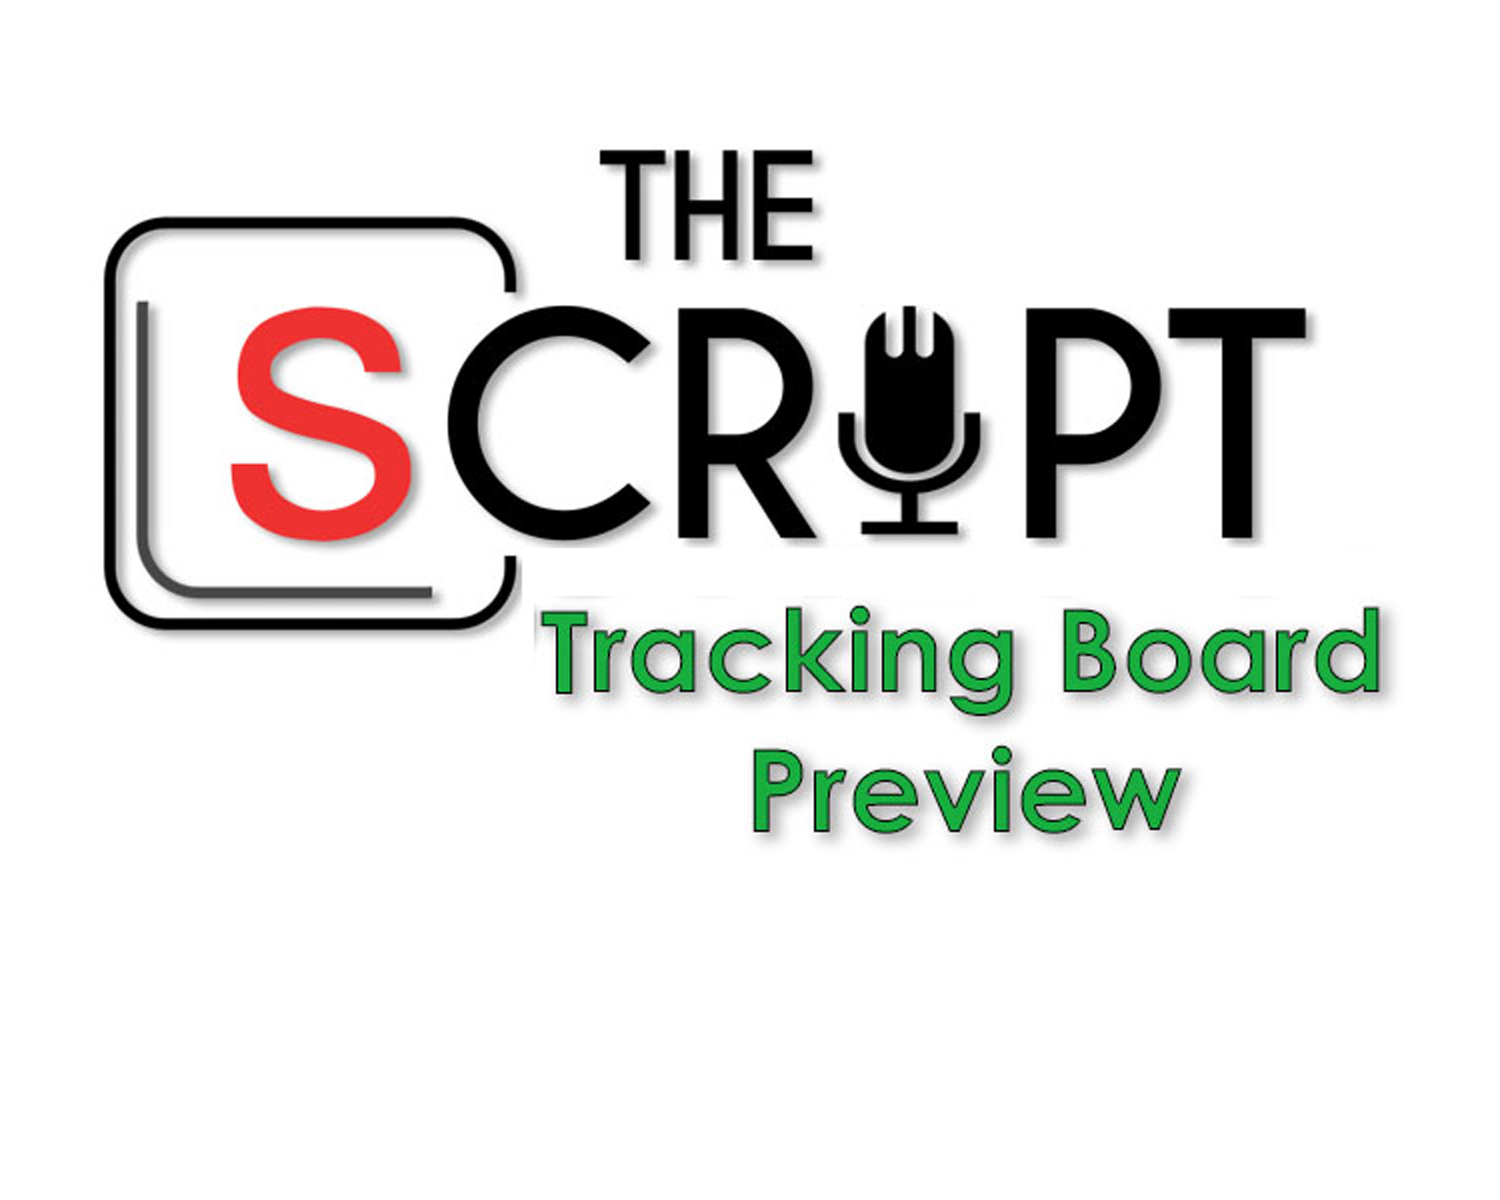 Tracking Board Preview: February 2018